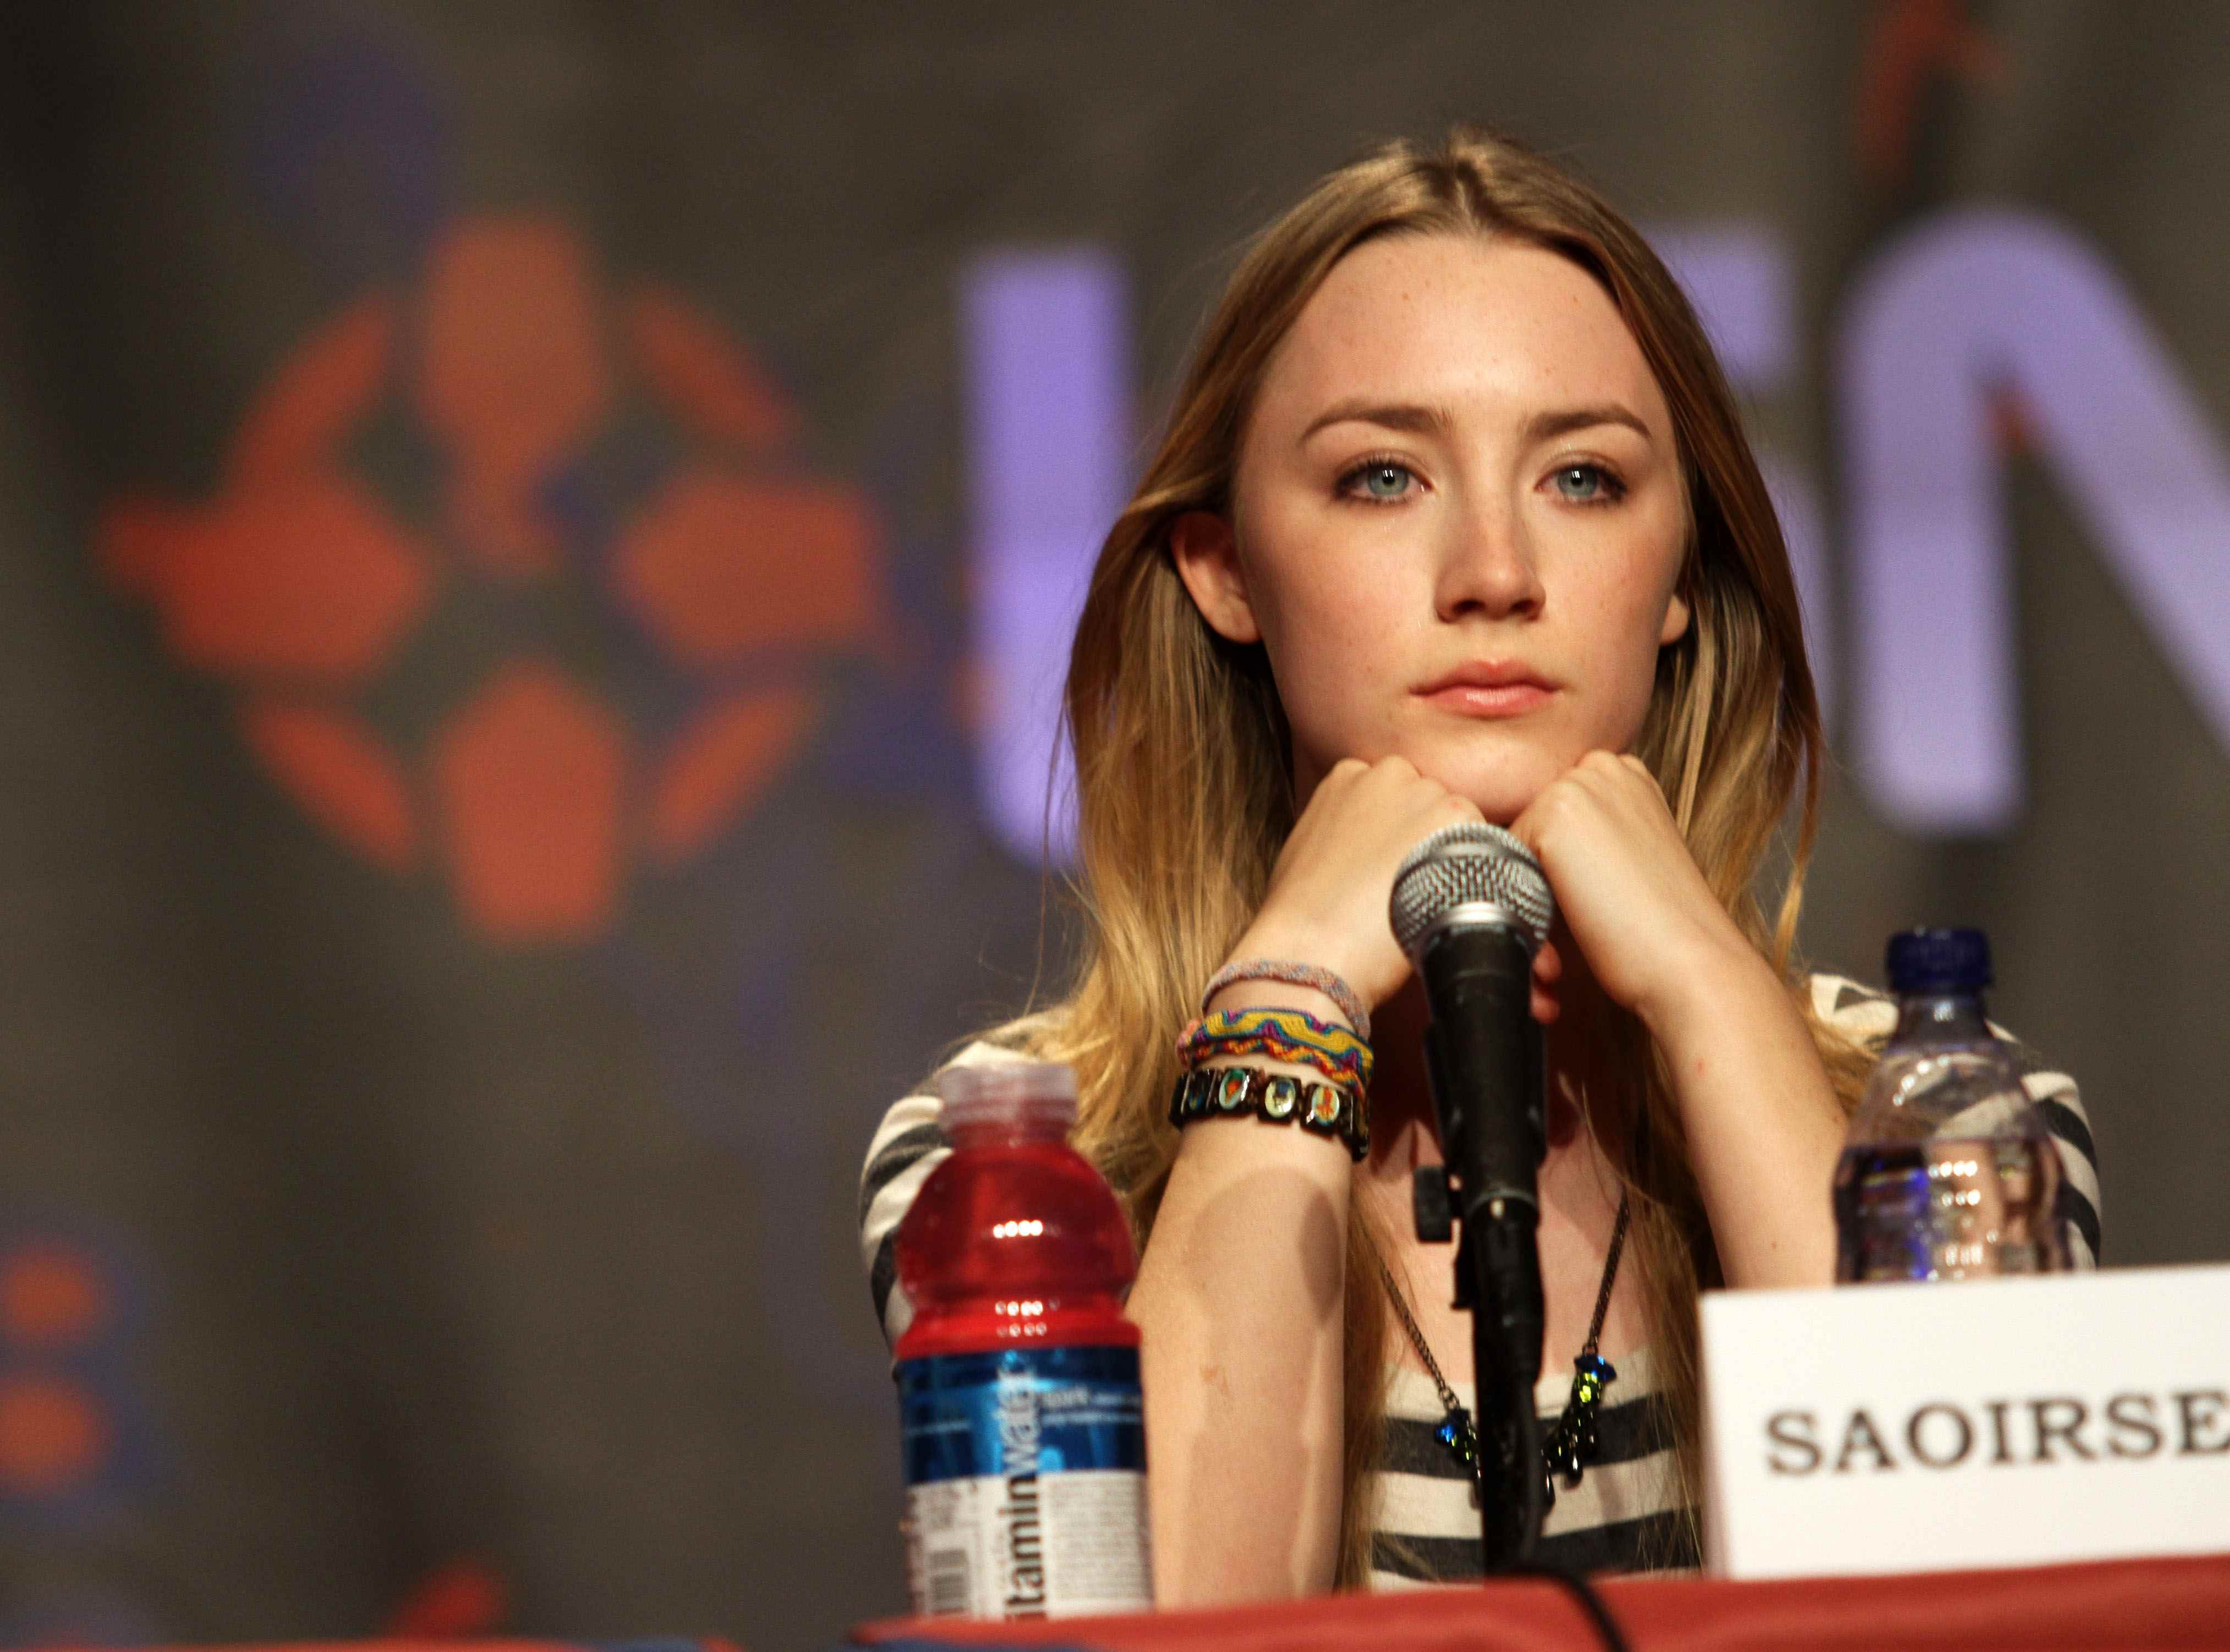 saoirse ronan HD Wallpaper